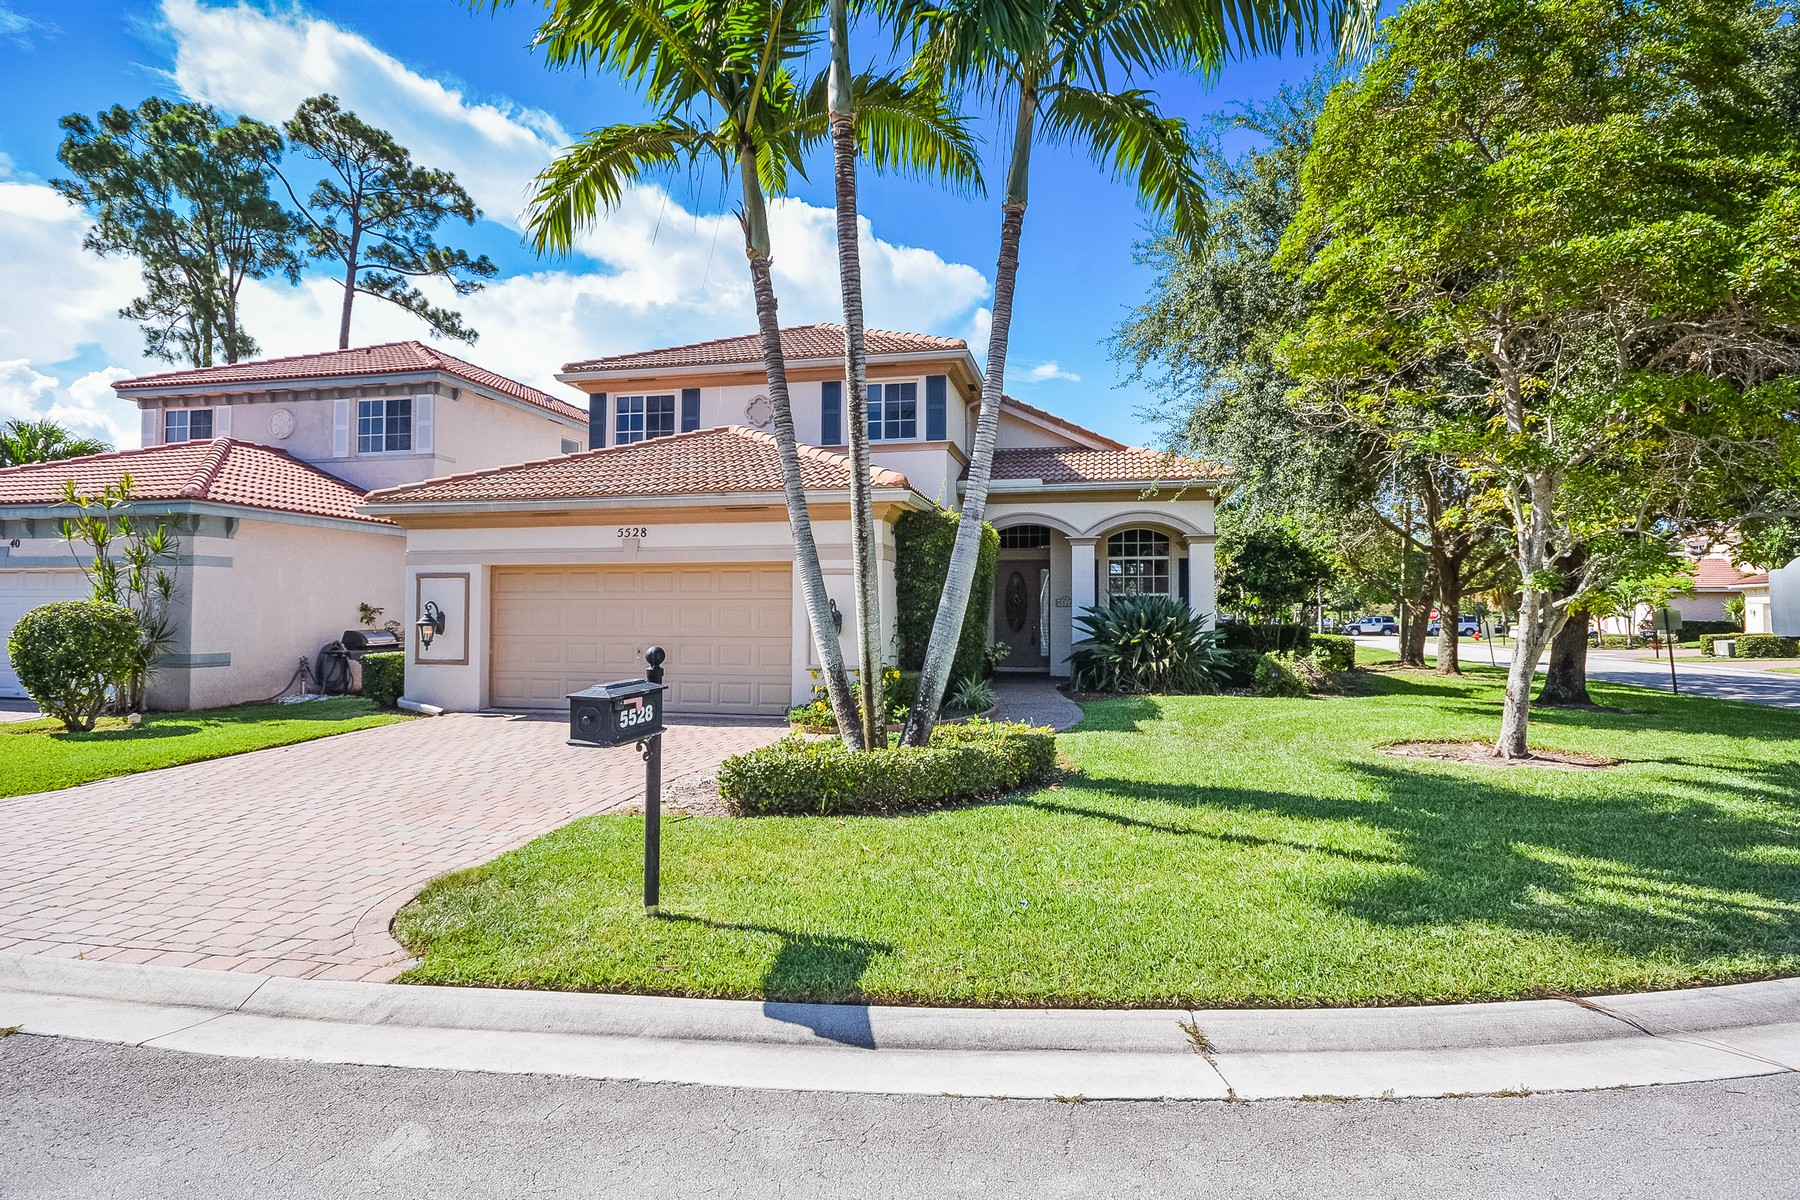 sales property at 5528 American Cir , Delray Beach, FL 33484